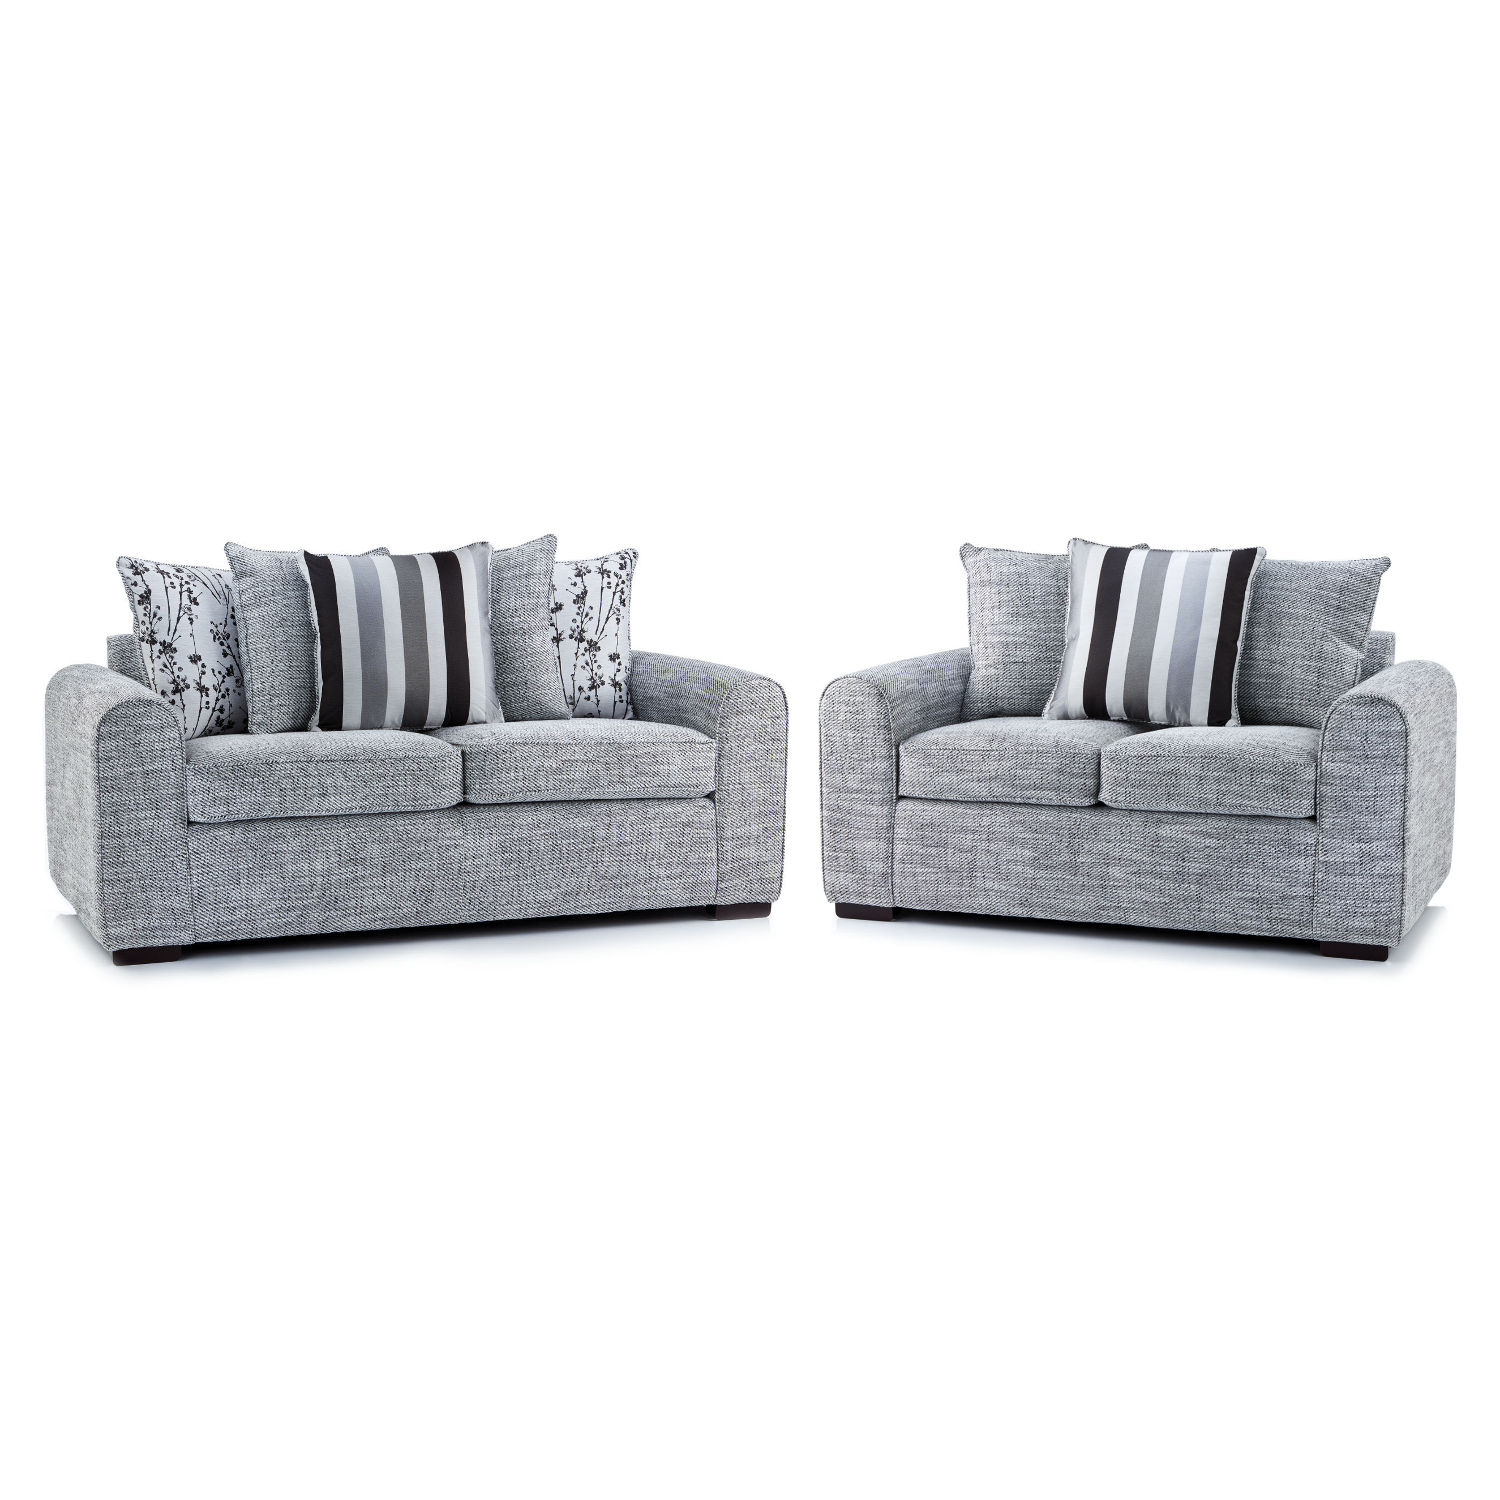 Pleasing Kenya 3 And 2 Seater Fabric Sofa Home Interior And Landscaping Eliaenasavecom